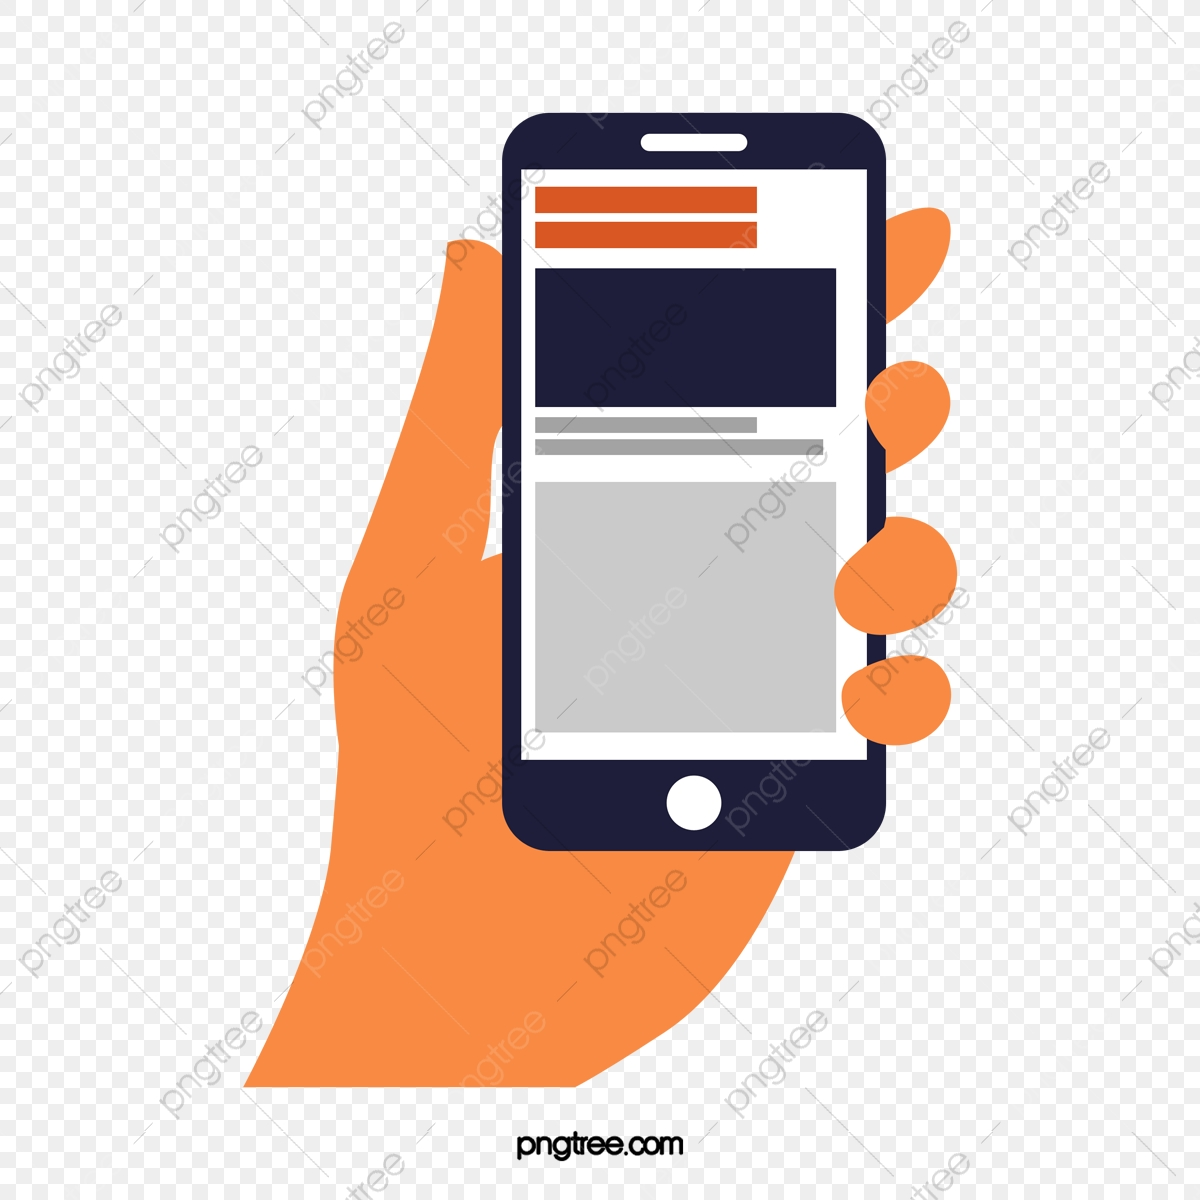 Phone On Hand Png – ✓ free for commercial use ✓ high quality images.